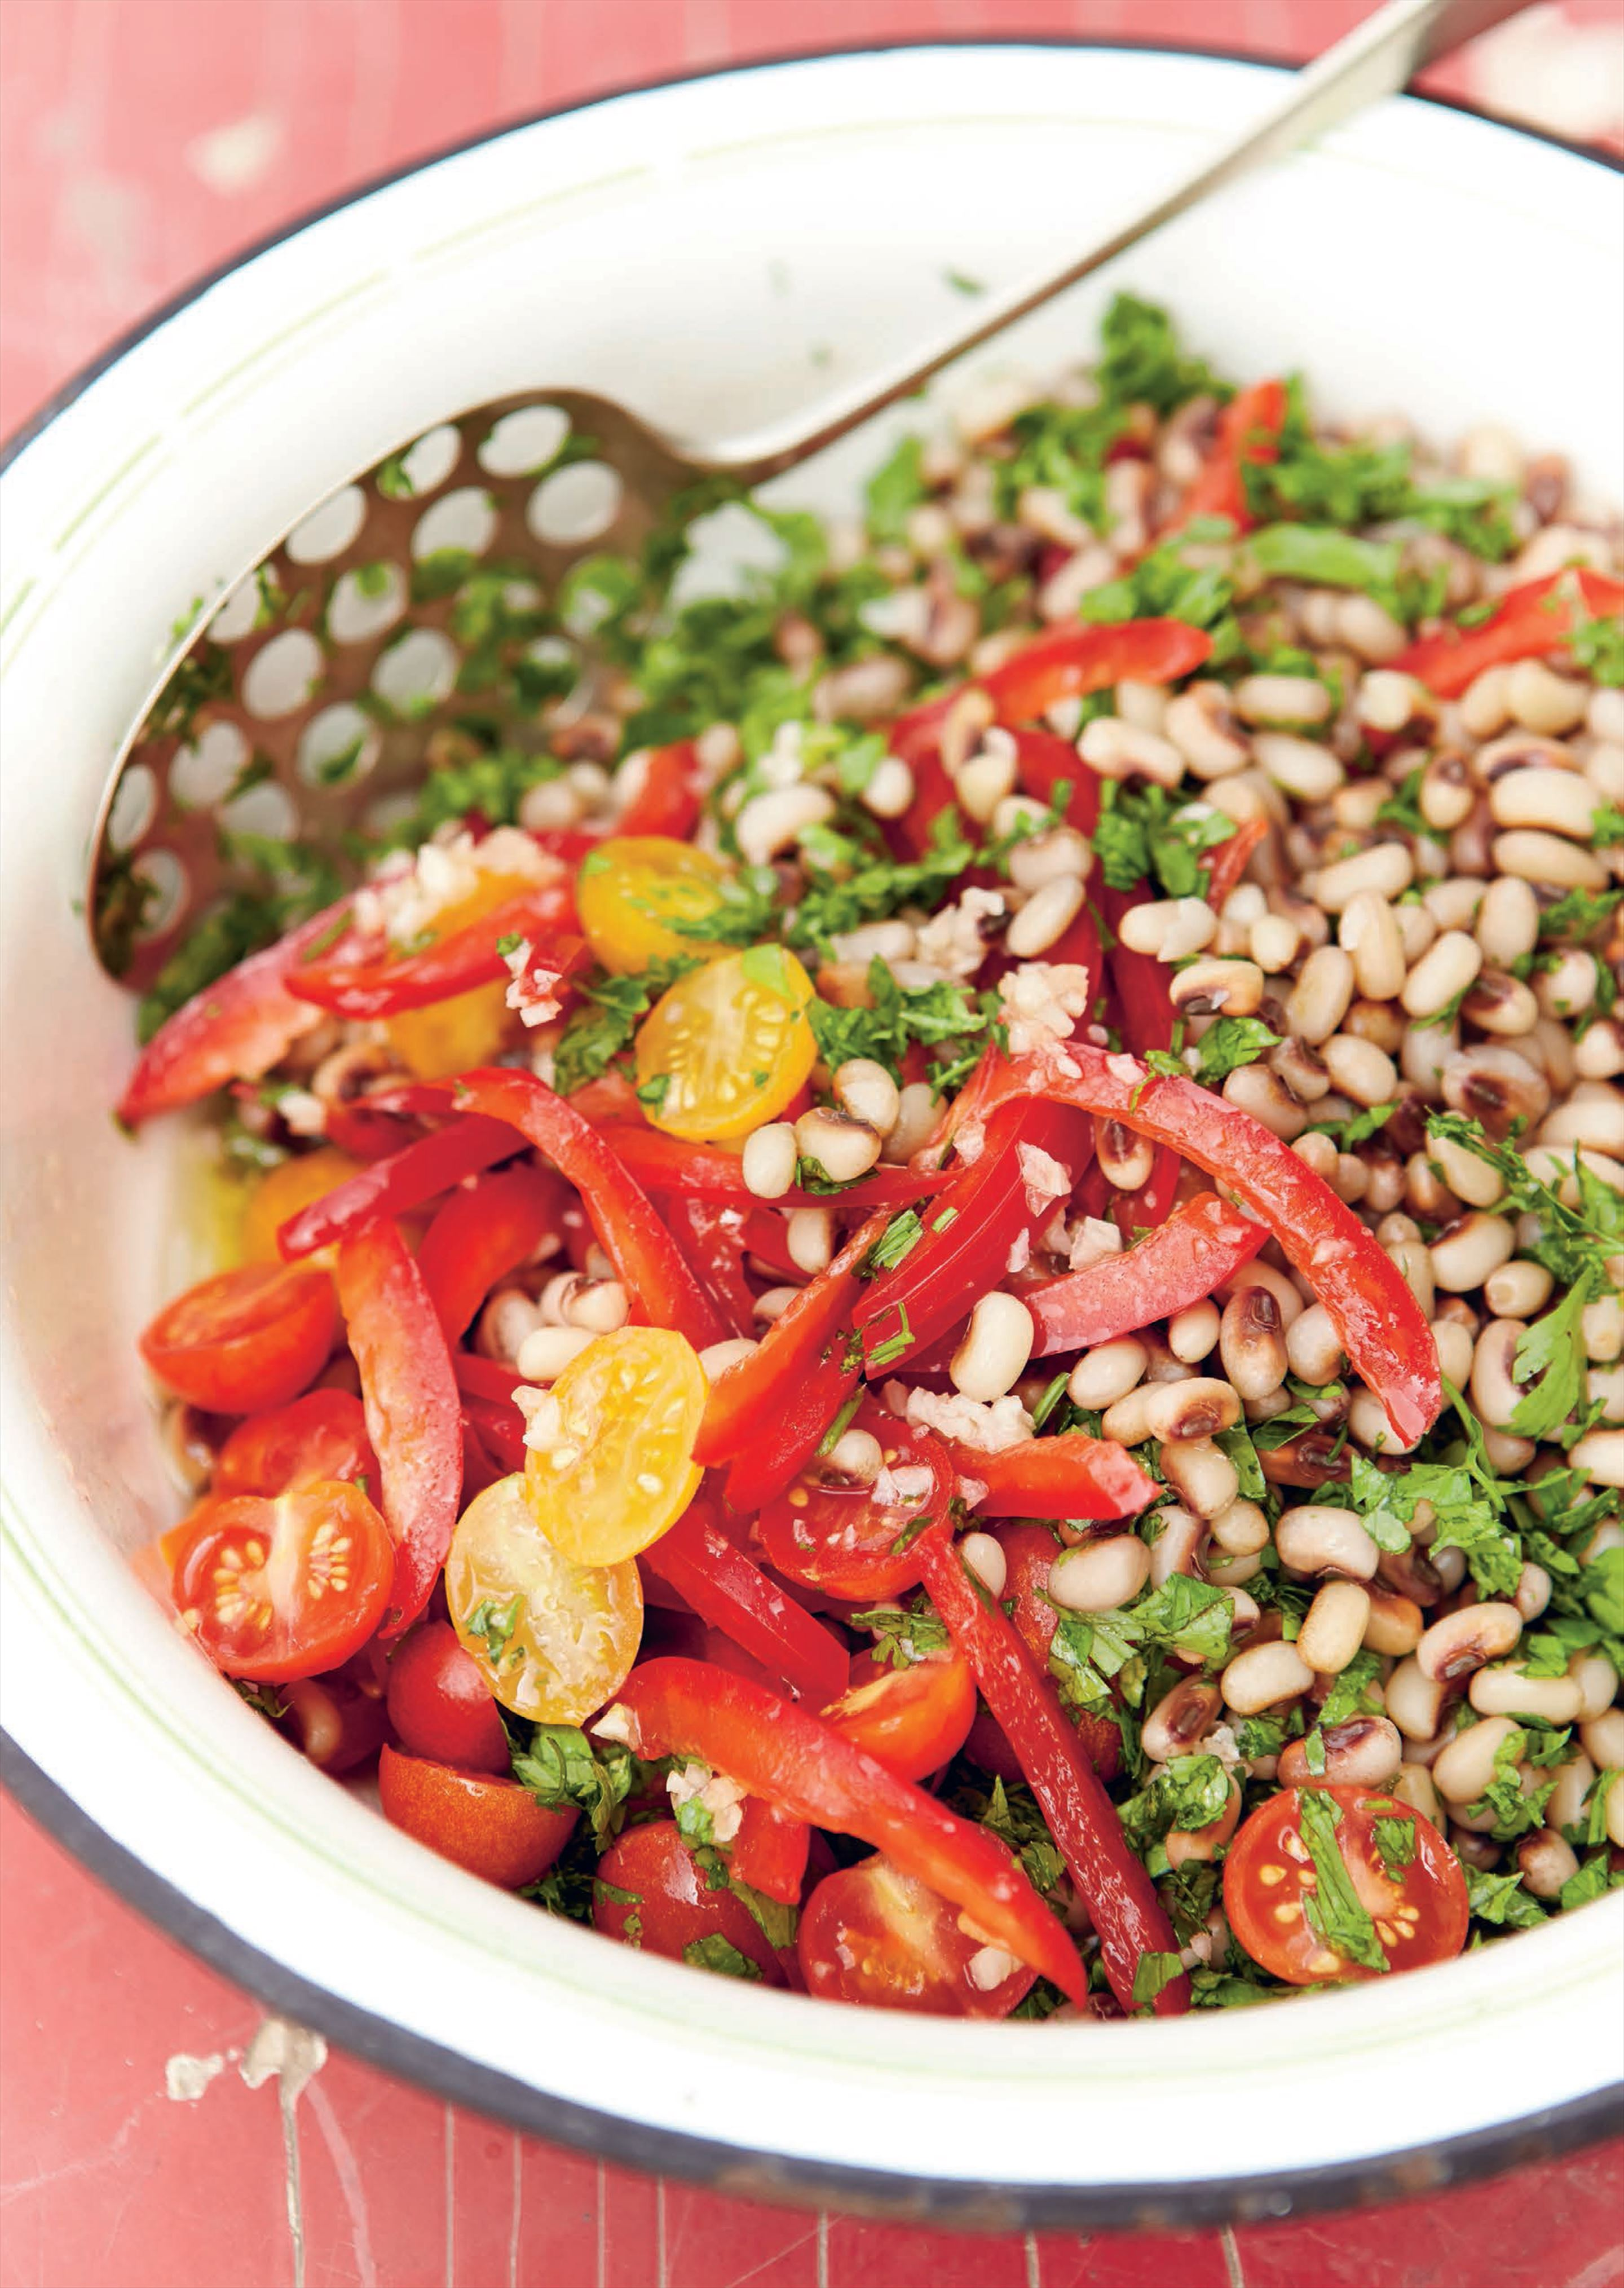 Black-eyed bean salad